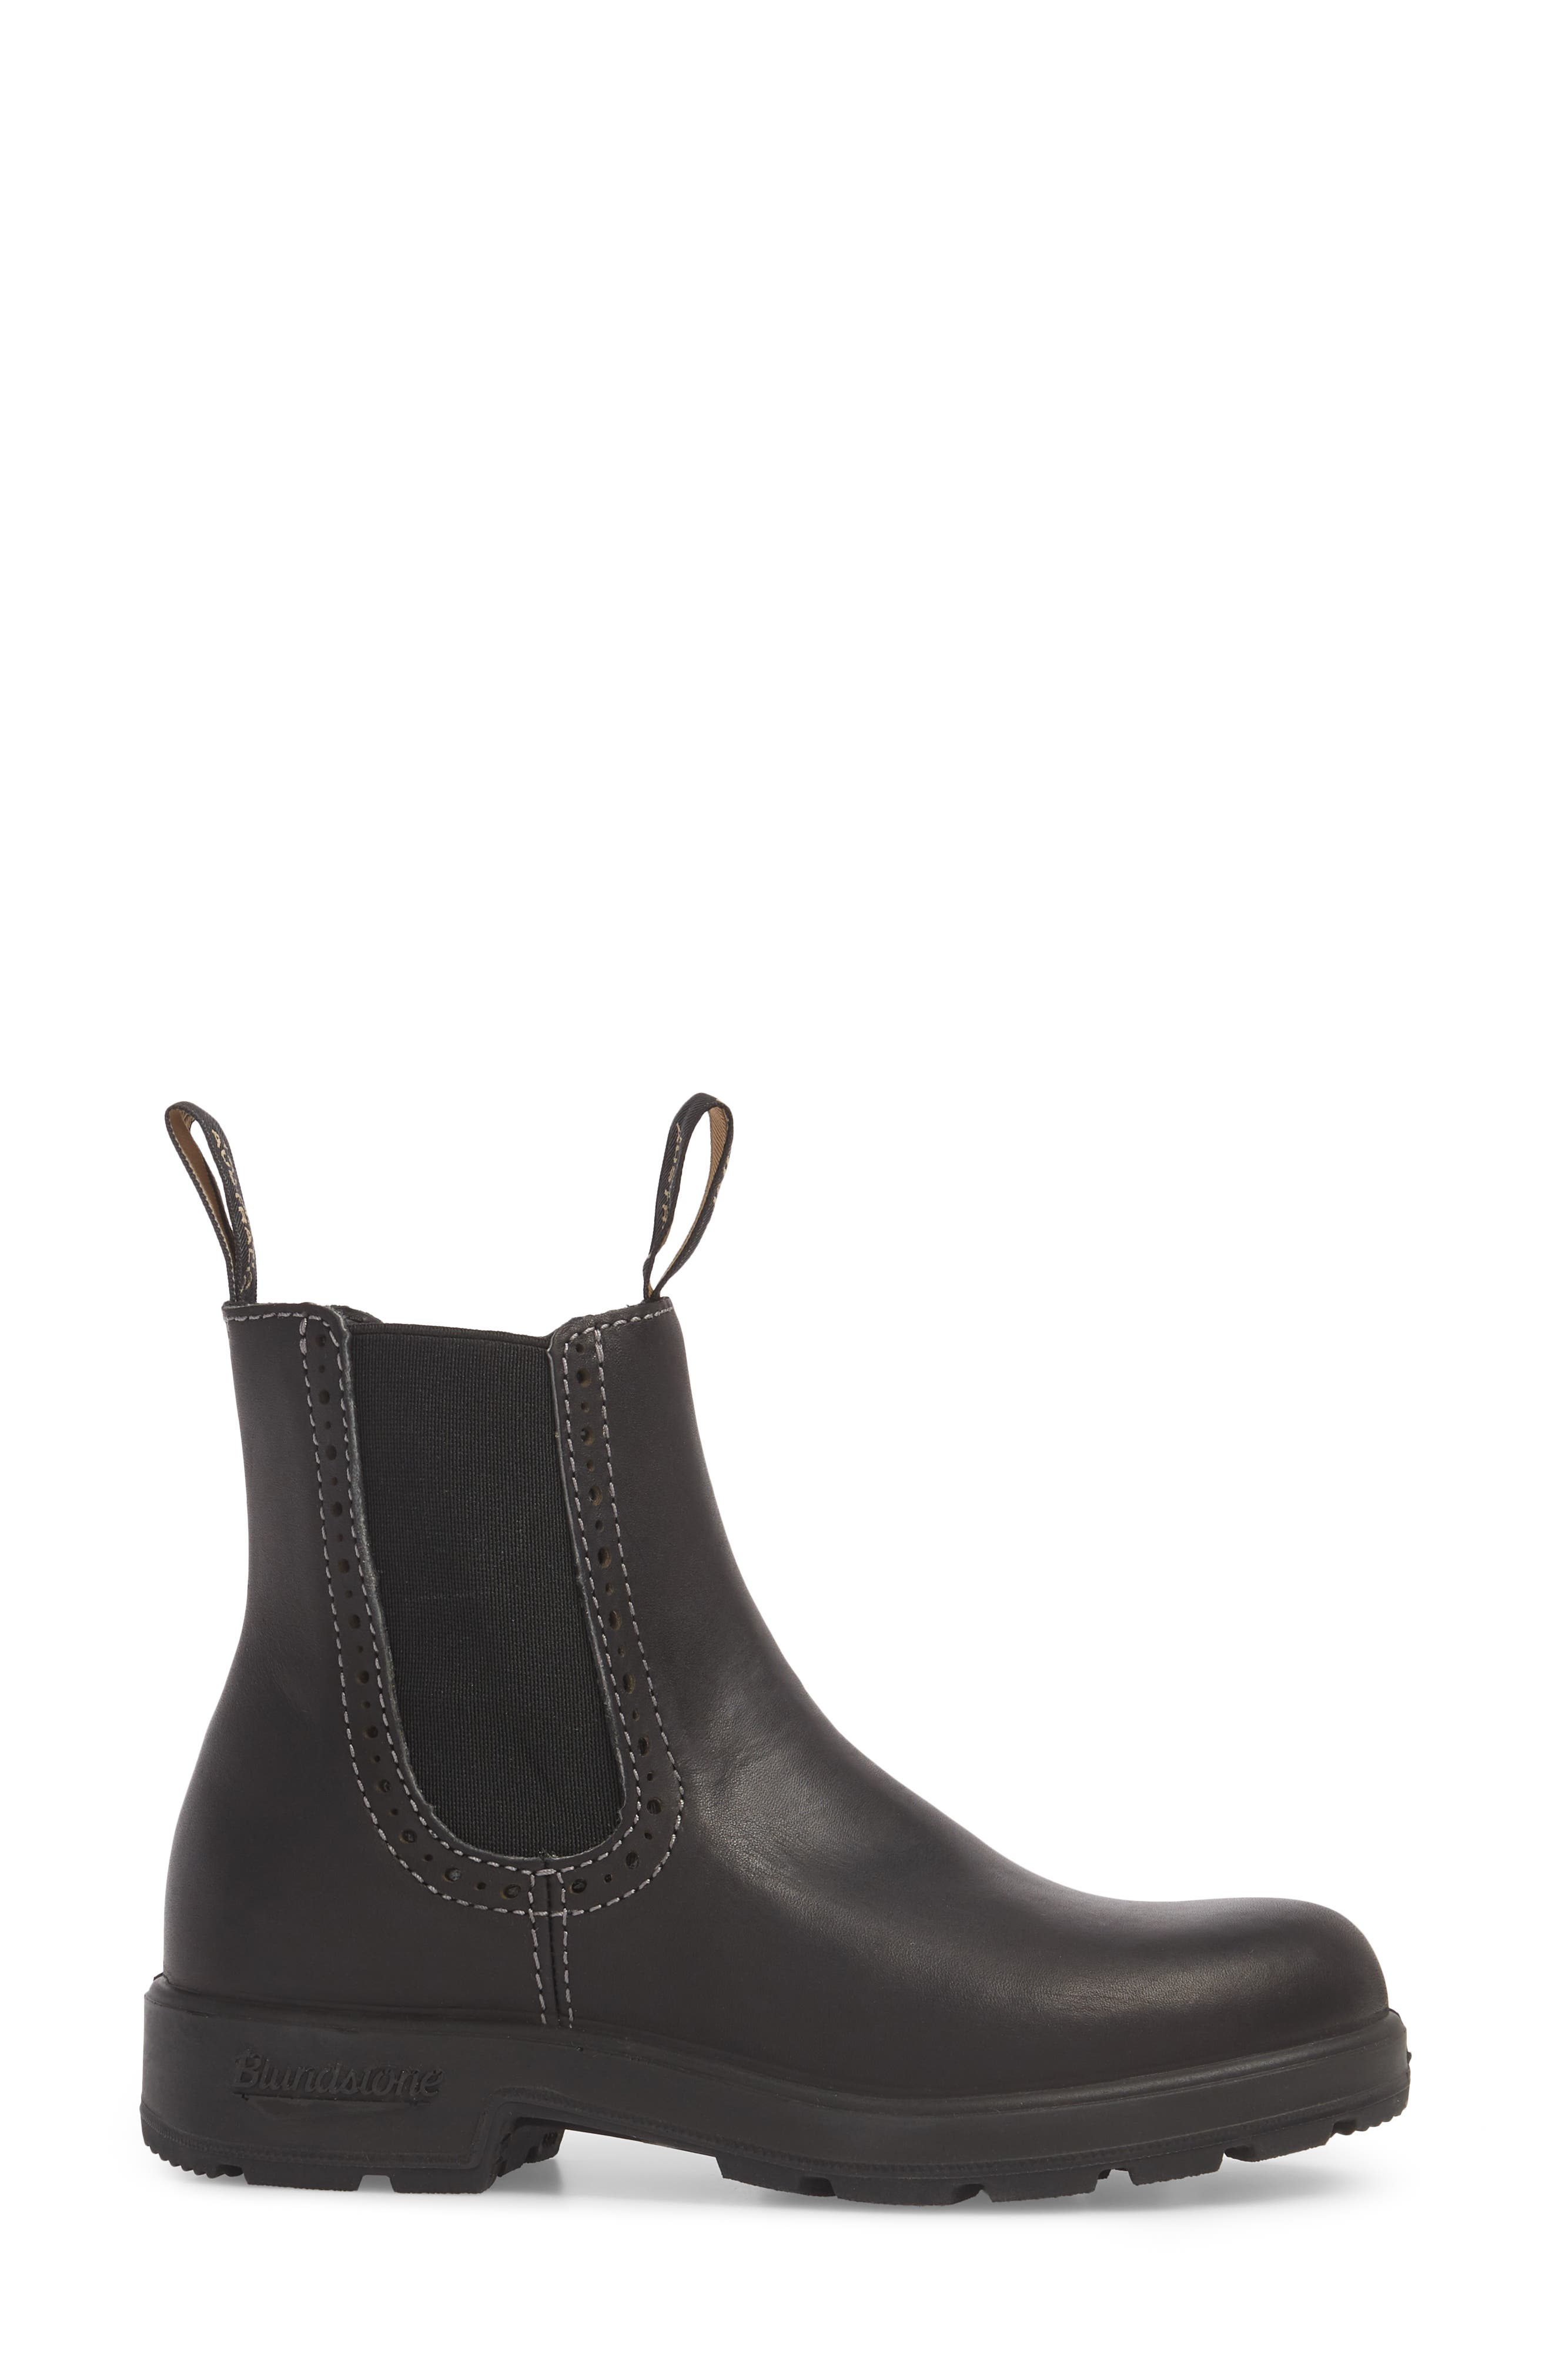 Footwear Chelsea Boot,                             Alternate thumbnail 3, color,                             VOLTAN BLACK LEATHER